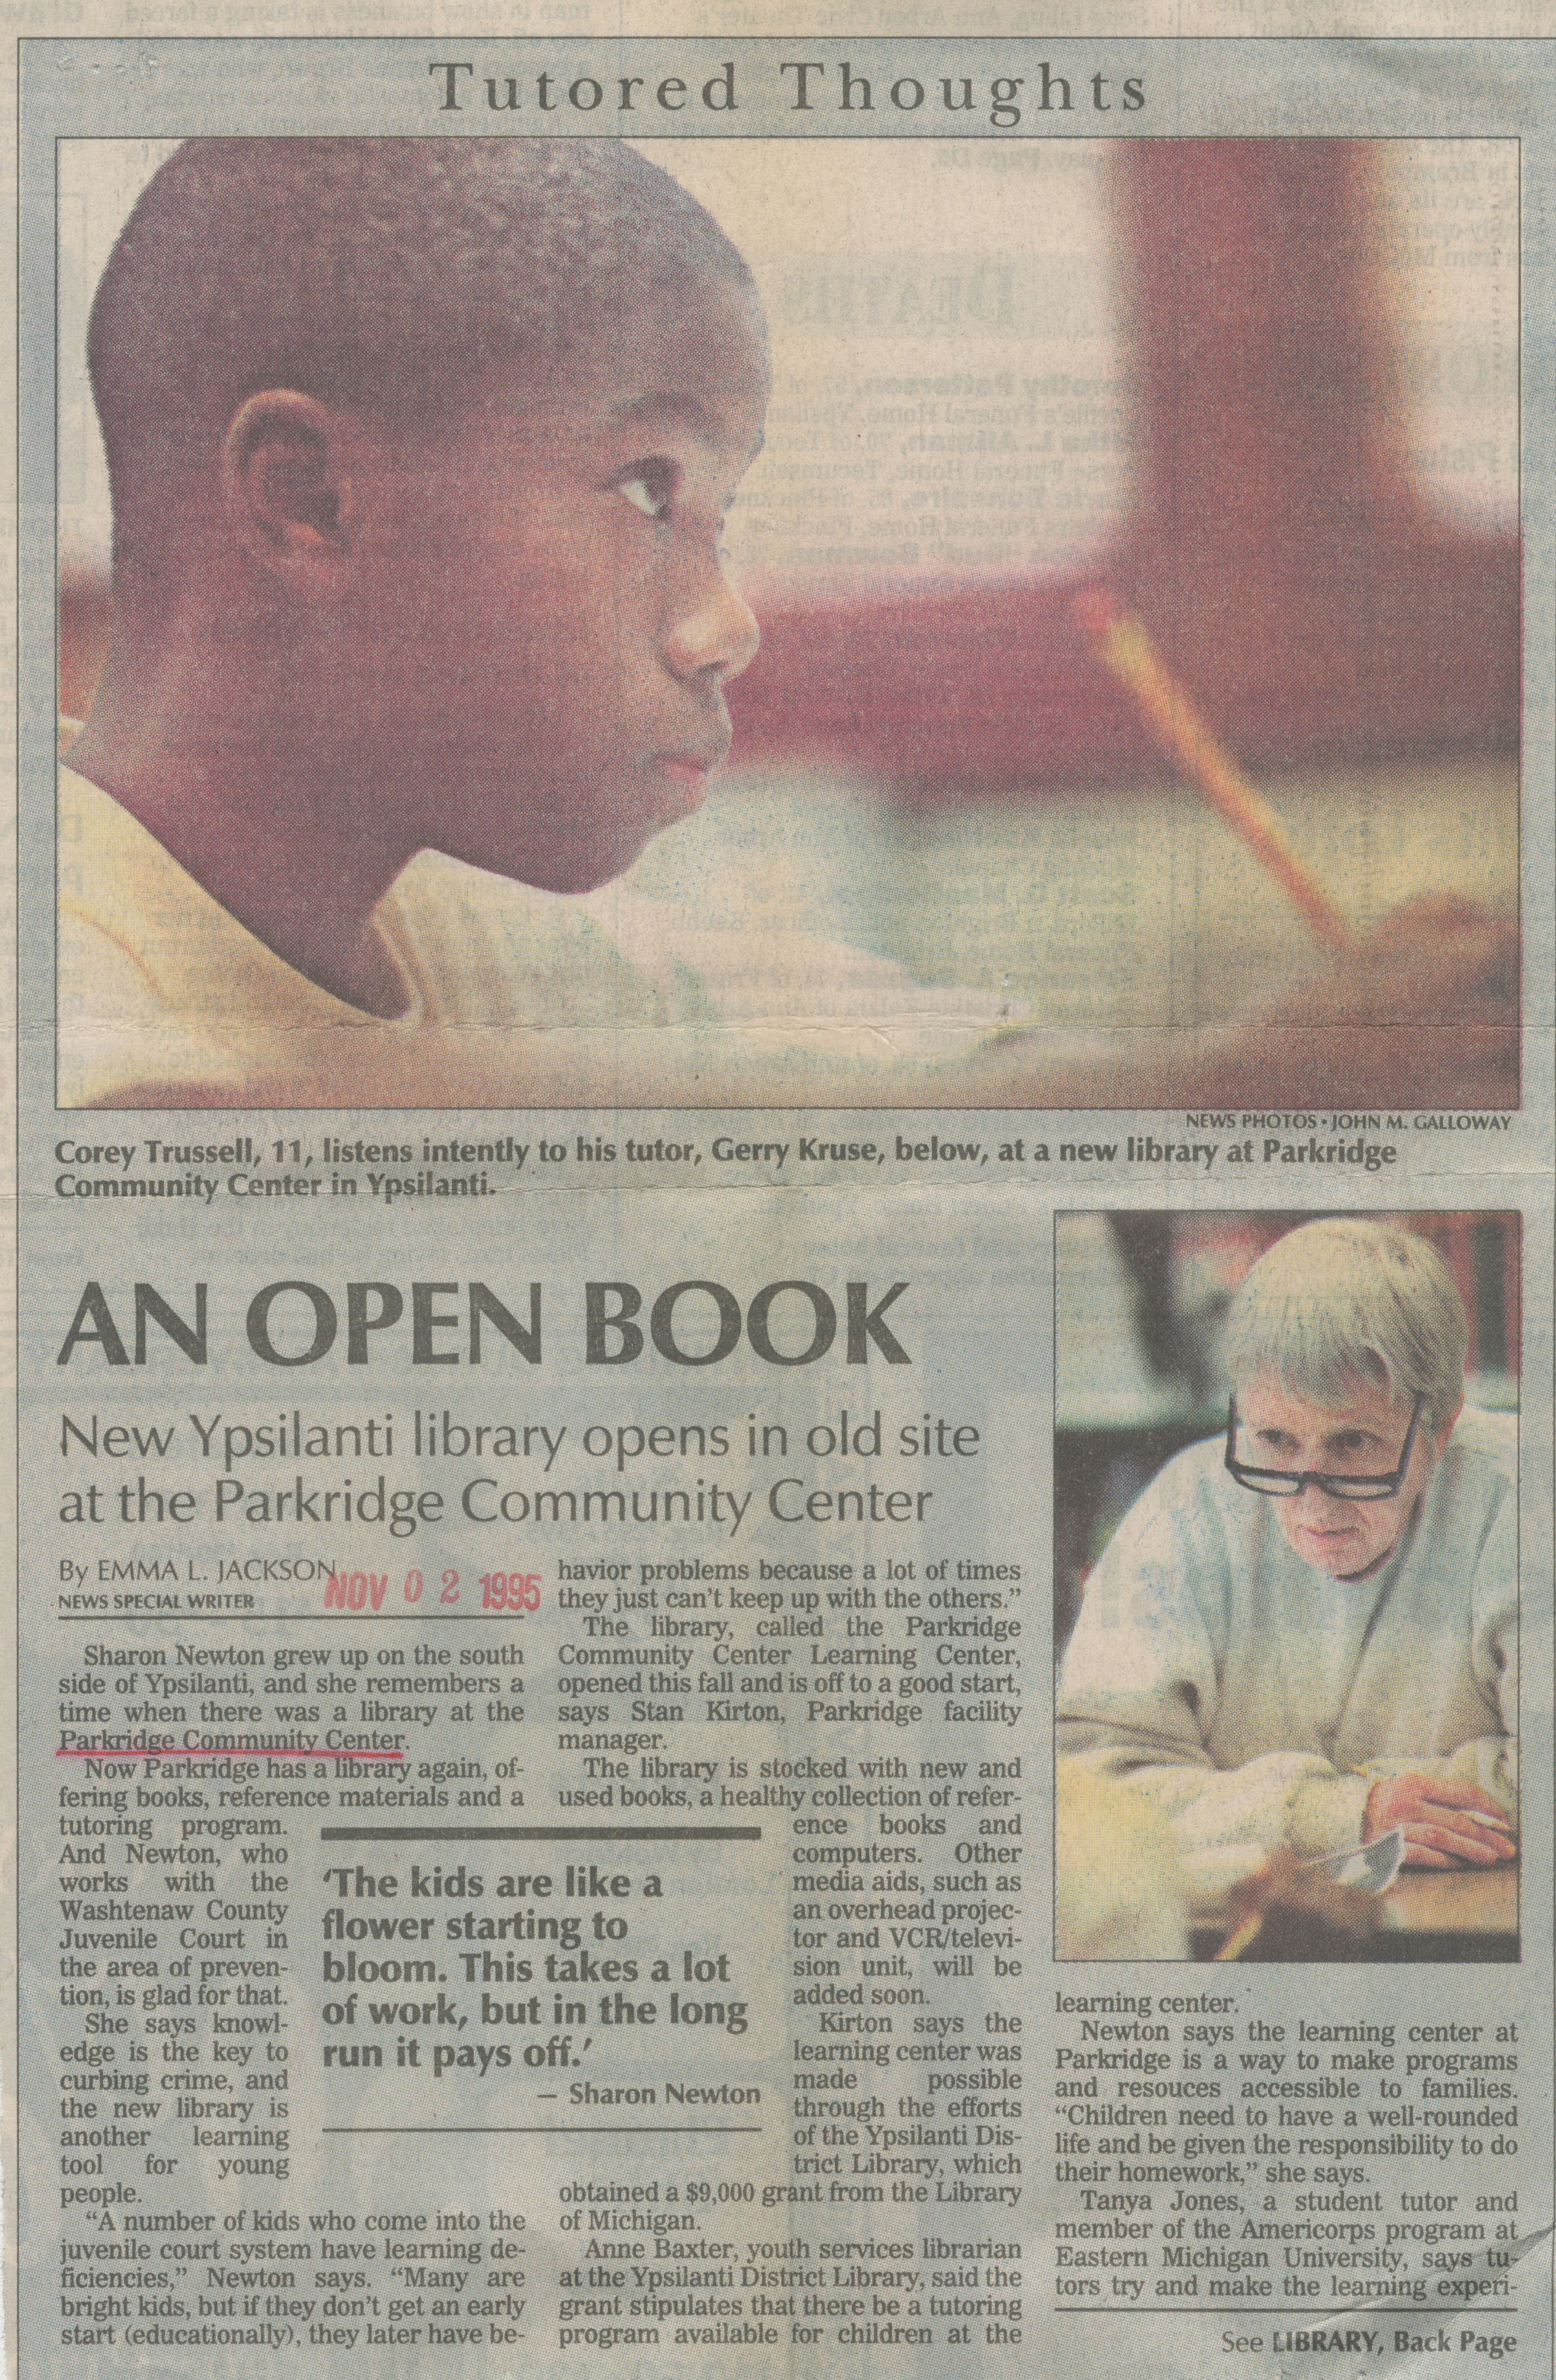 An Open Book: New Ypsilanti Library Opens in Old Site at the Parkridge Community Center image